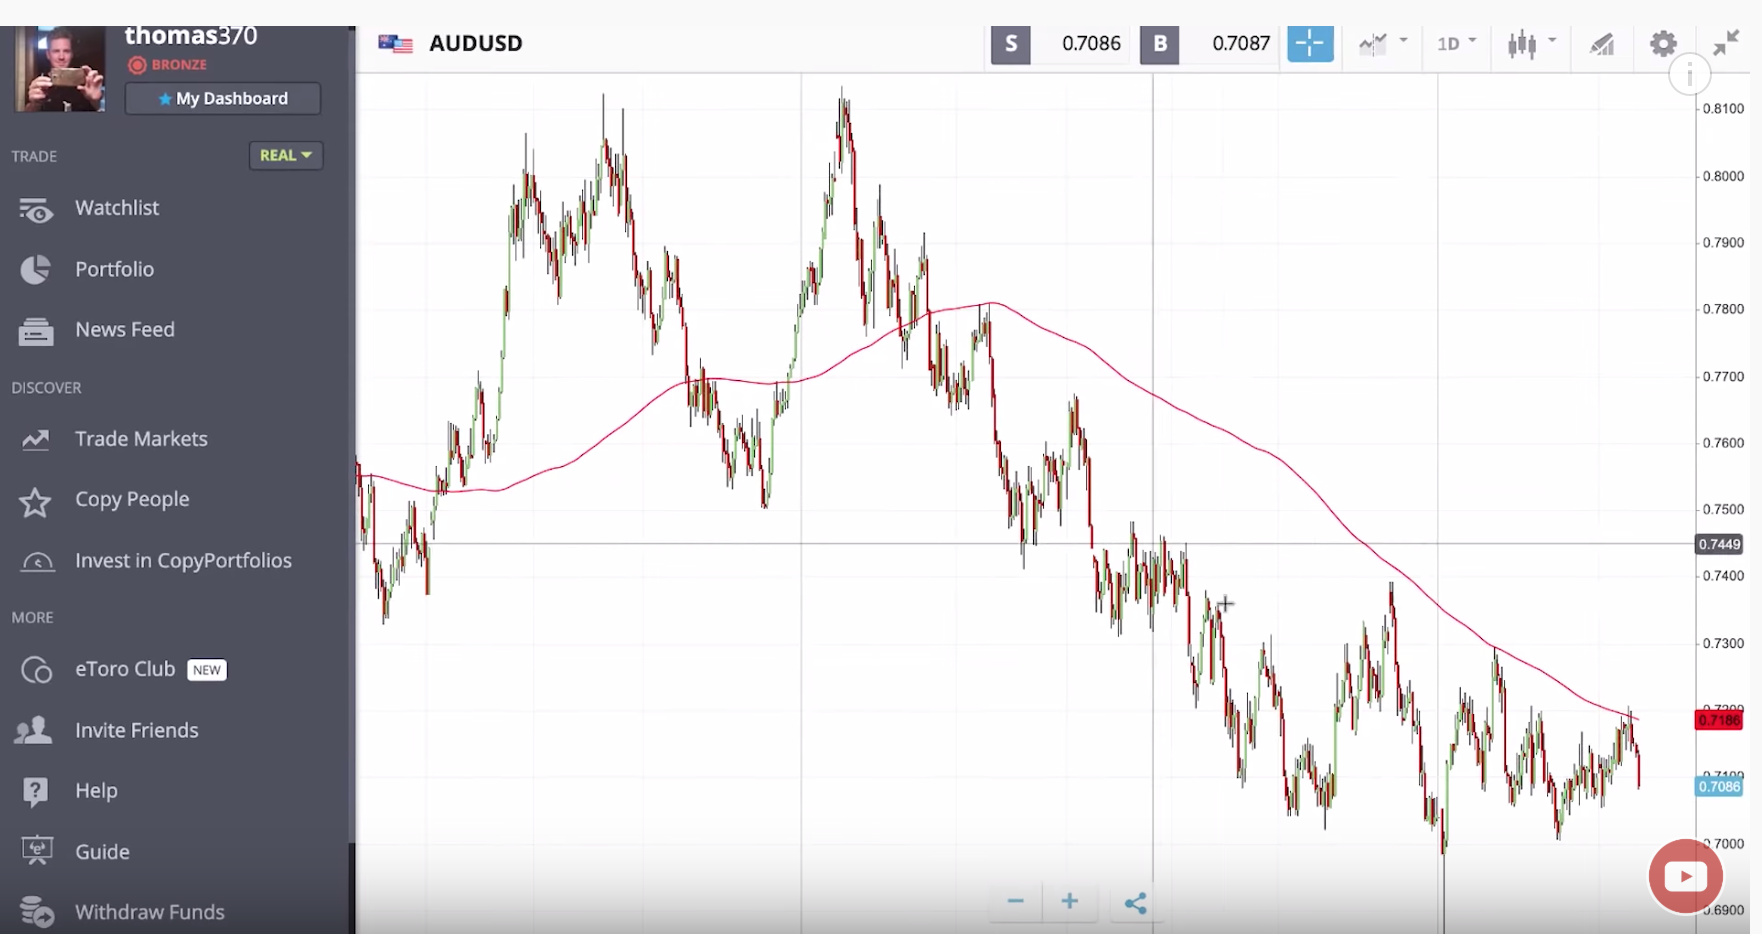 Trading Chart showing AUD Falling against USD in Candlesticks - April 2019